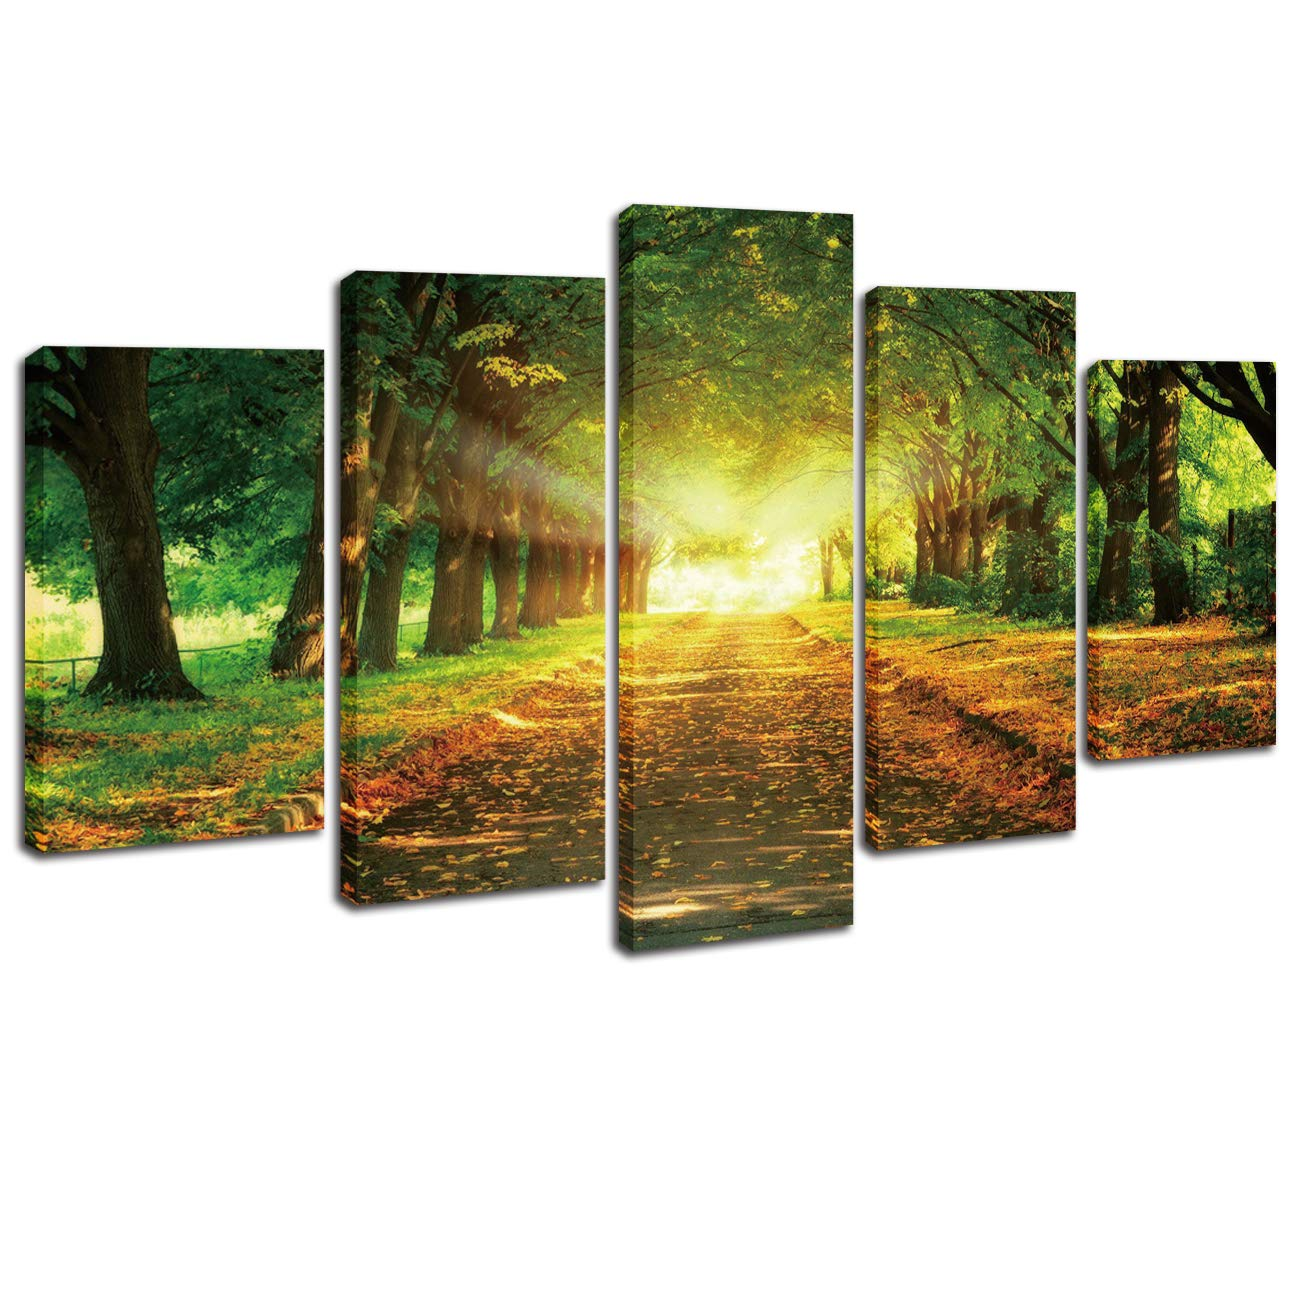 5 Pieces Modern Canvas Painting Spring Tree Poster Wall Art Home Decoration Sunset Landscape Road Print On Canvas Giclee Artwork Wall Decor Living Room Decor/ 20x30cmx2pcs 20x40cmx2pcs 20x50cmx1pcs